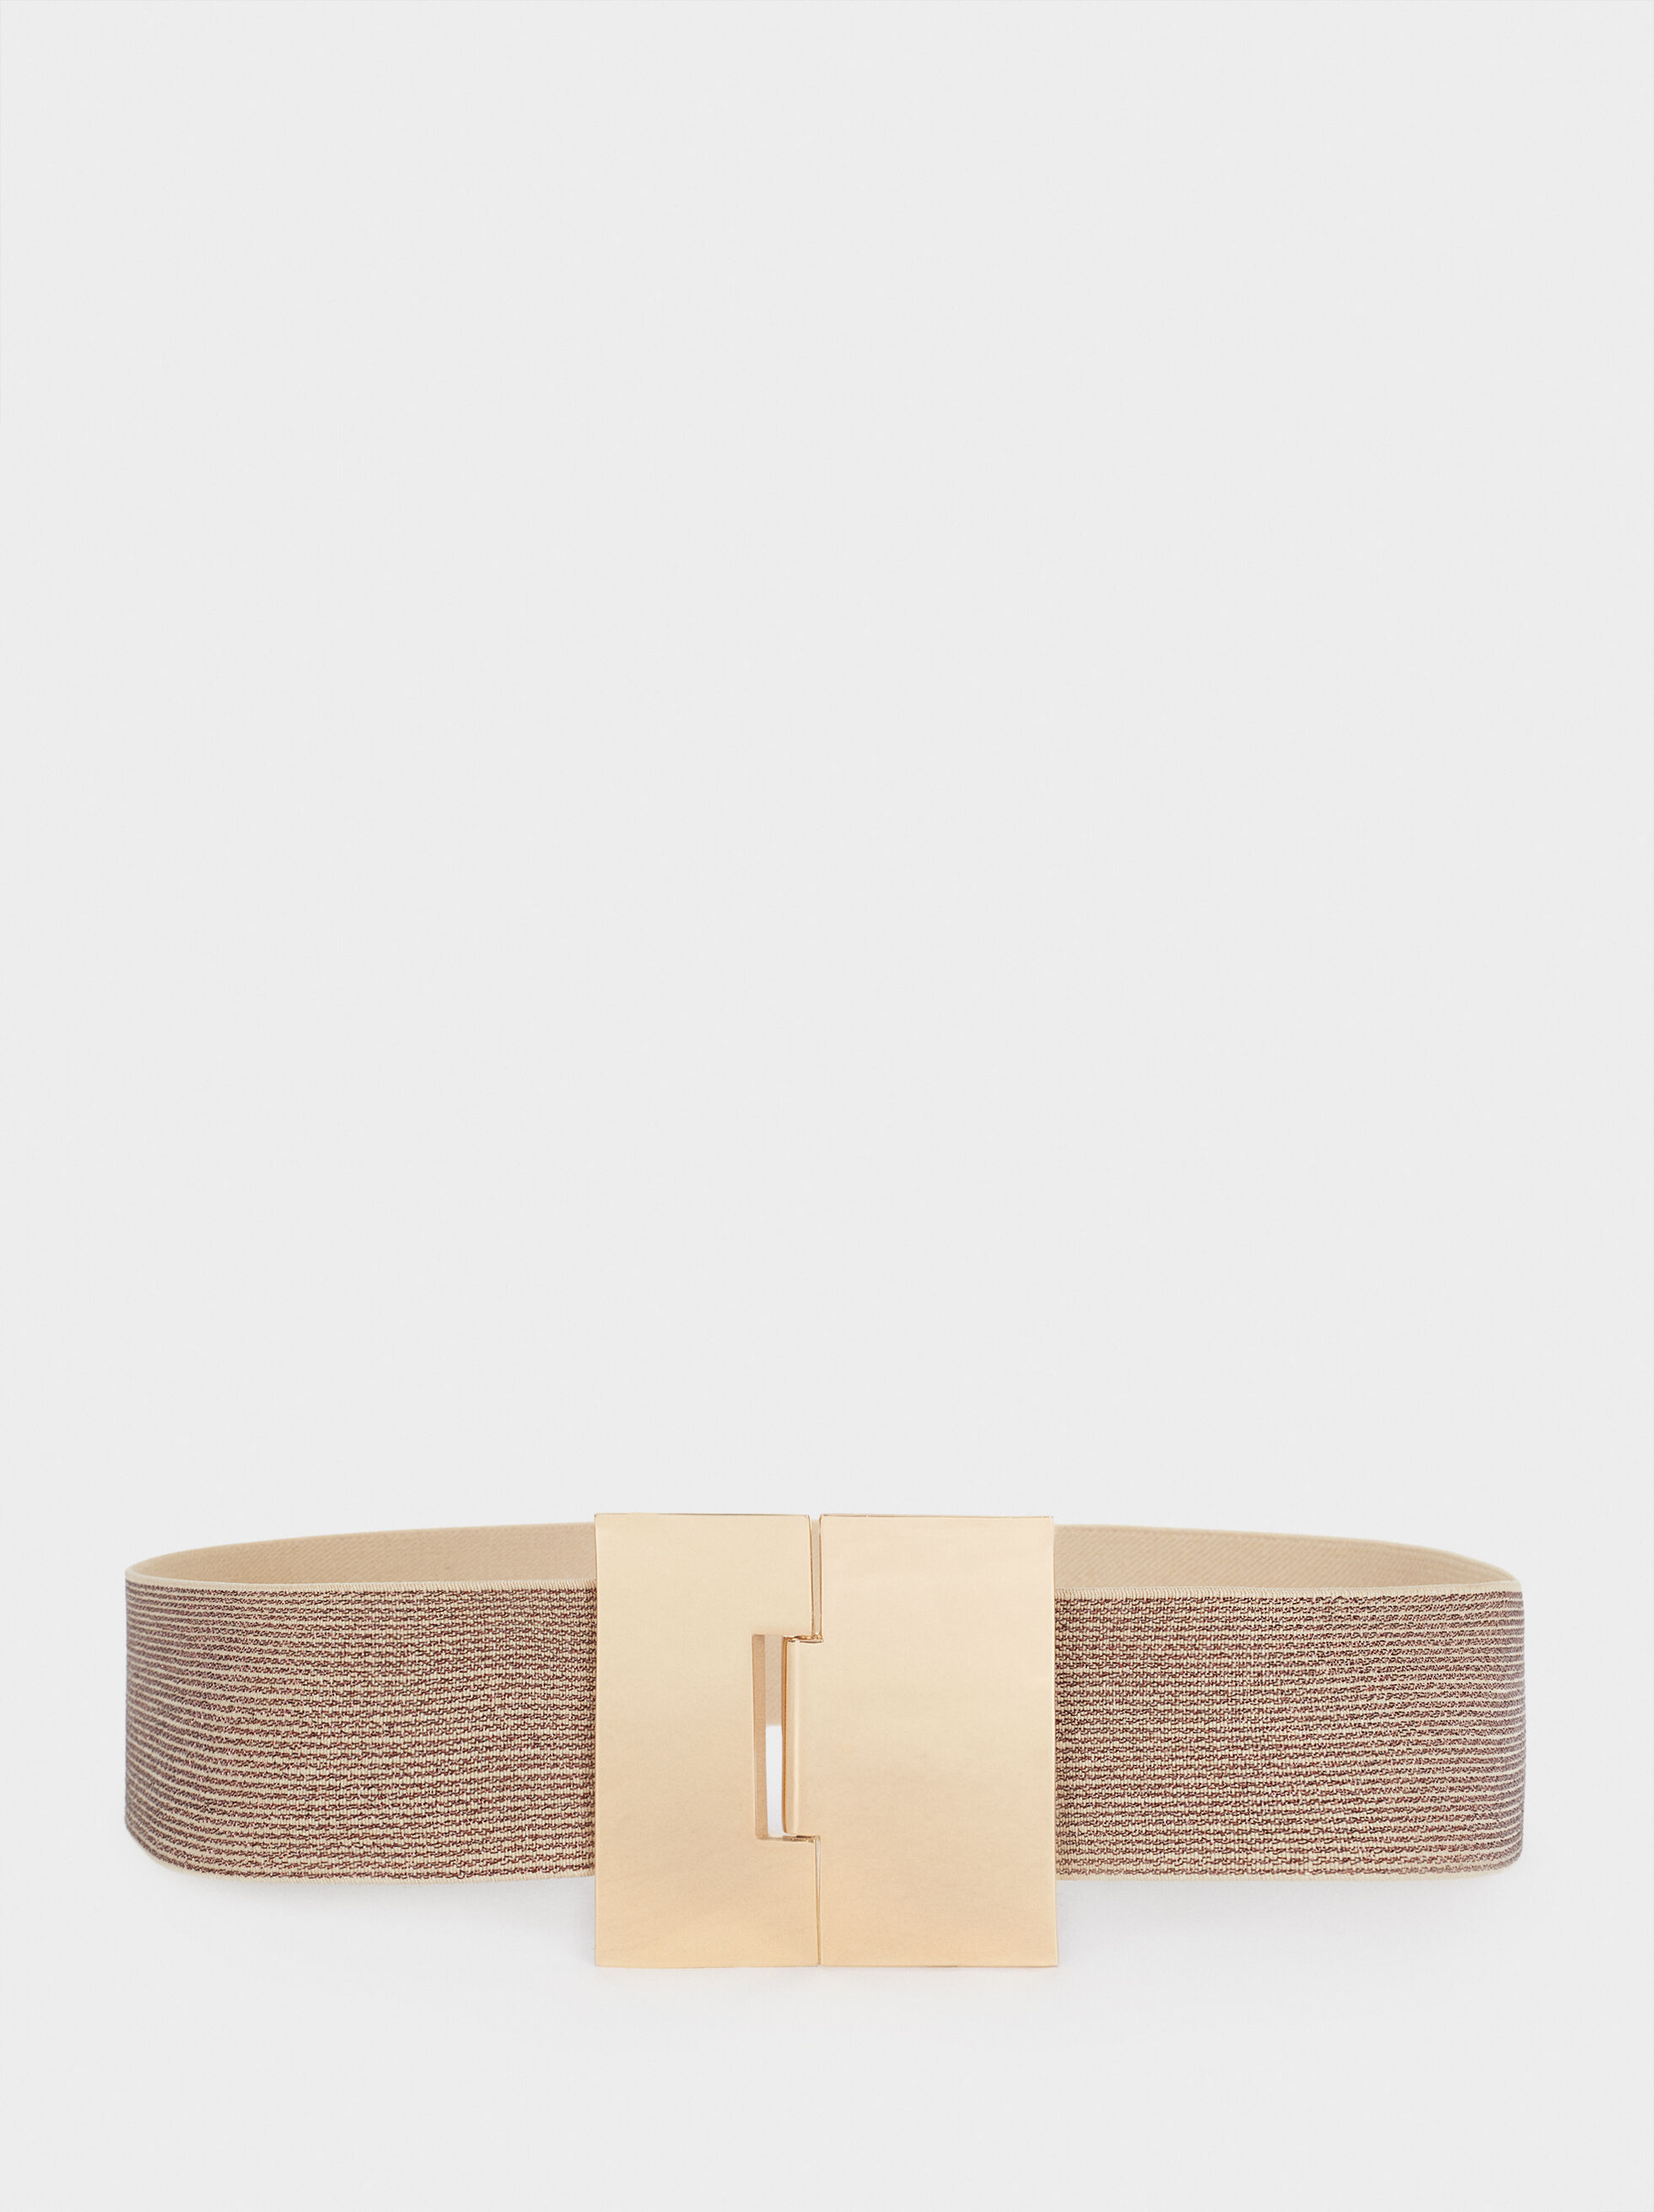 Stretch Belt With Golden Buckle, Golden, hi-res